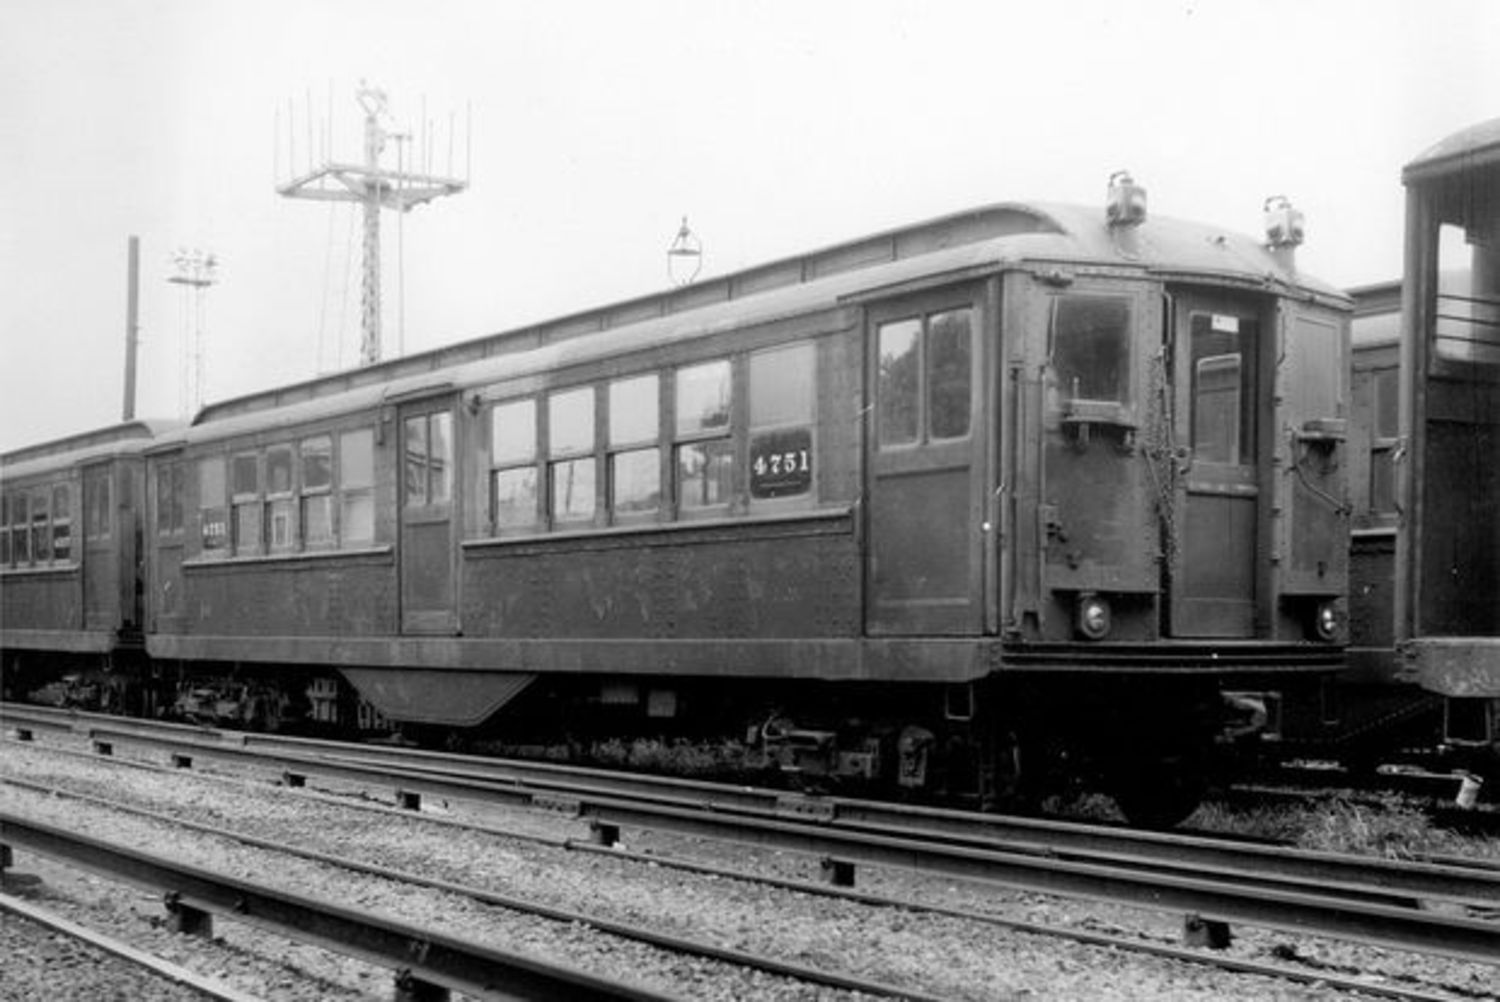 The IRT Steinway, LV Motor car #4751 built in 1916.